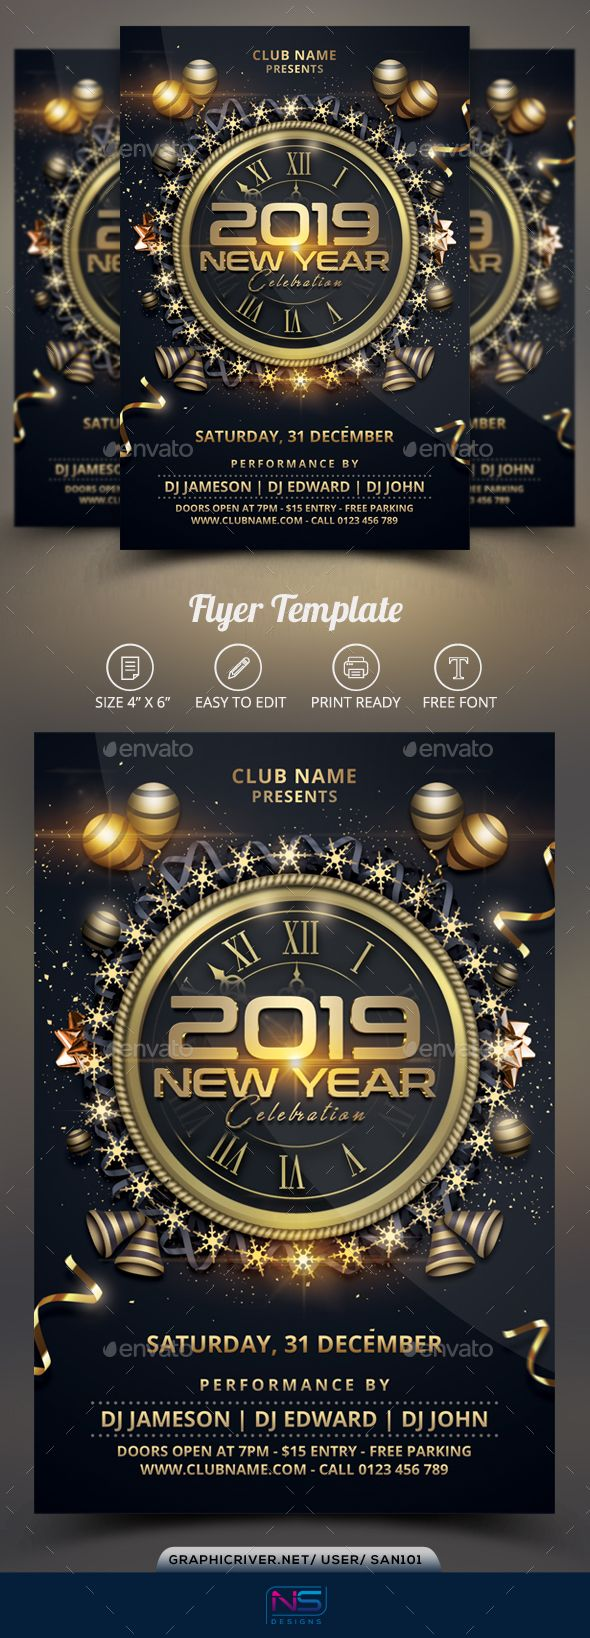 2019 new year flyer template psd